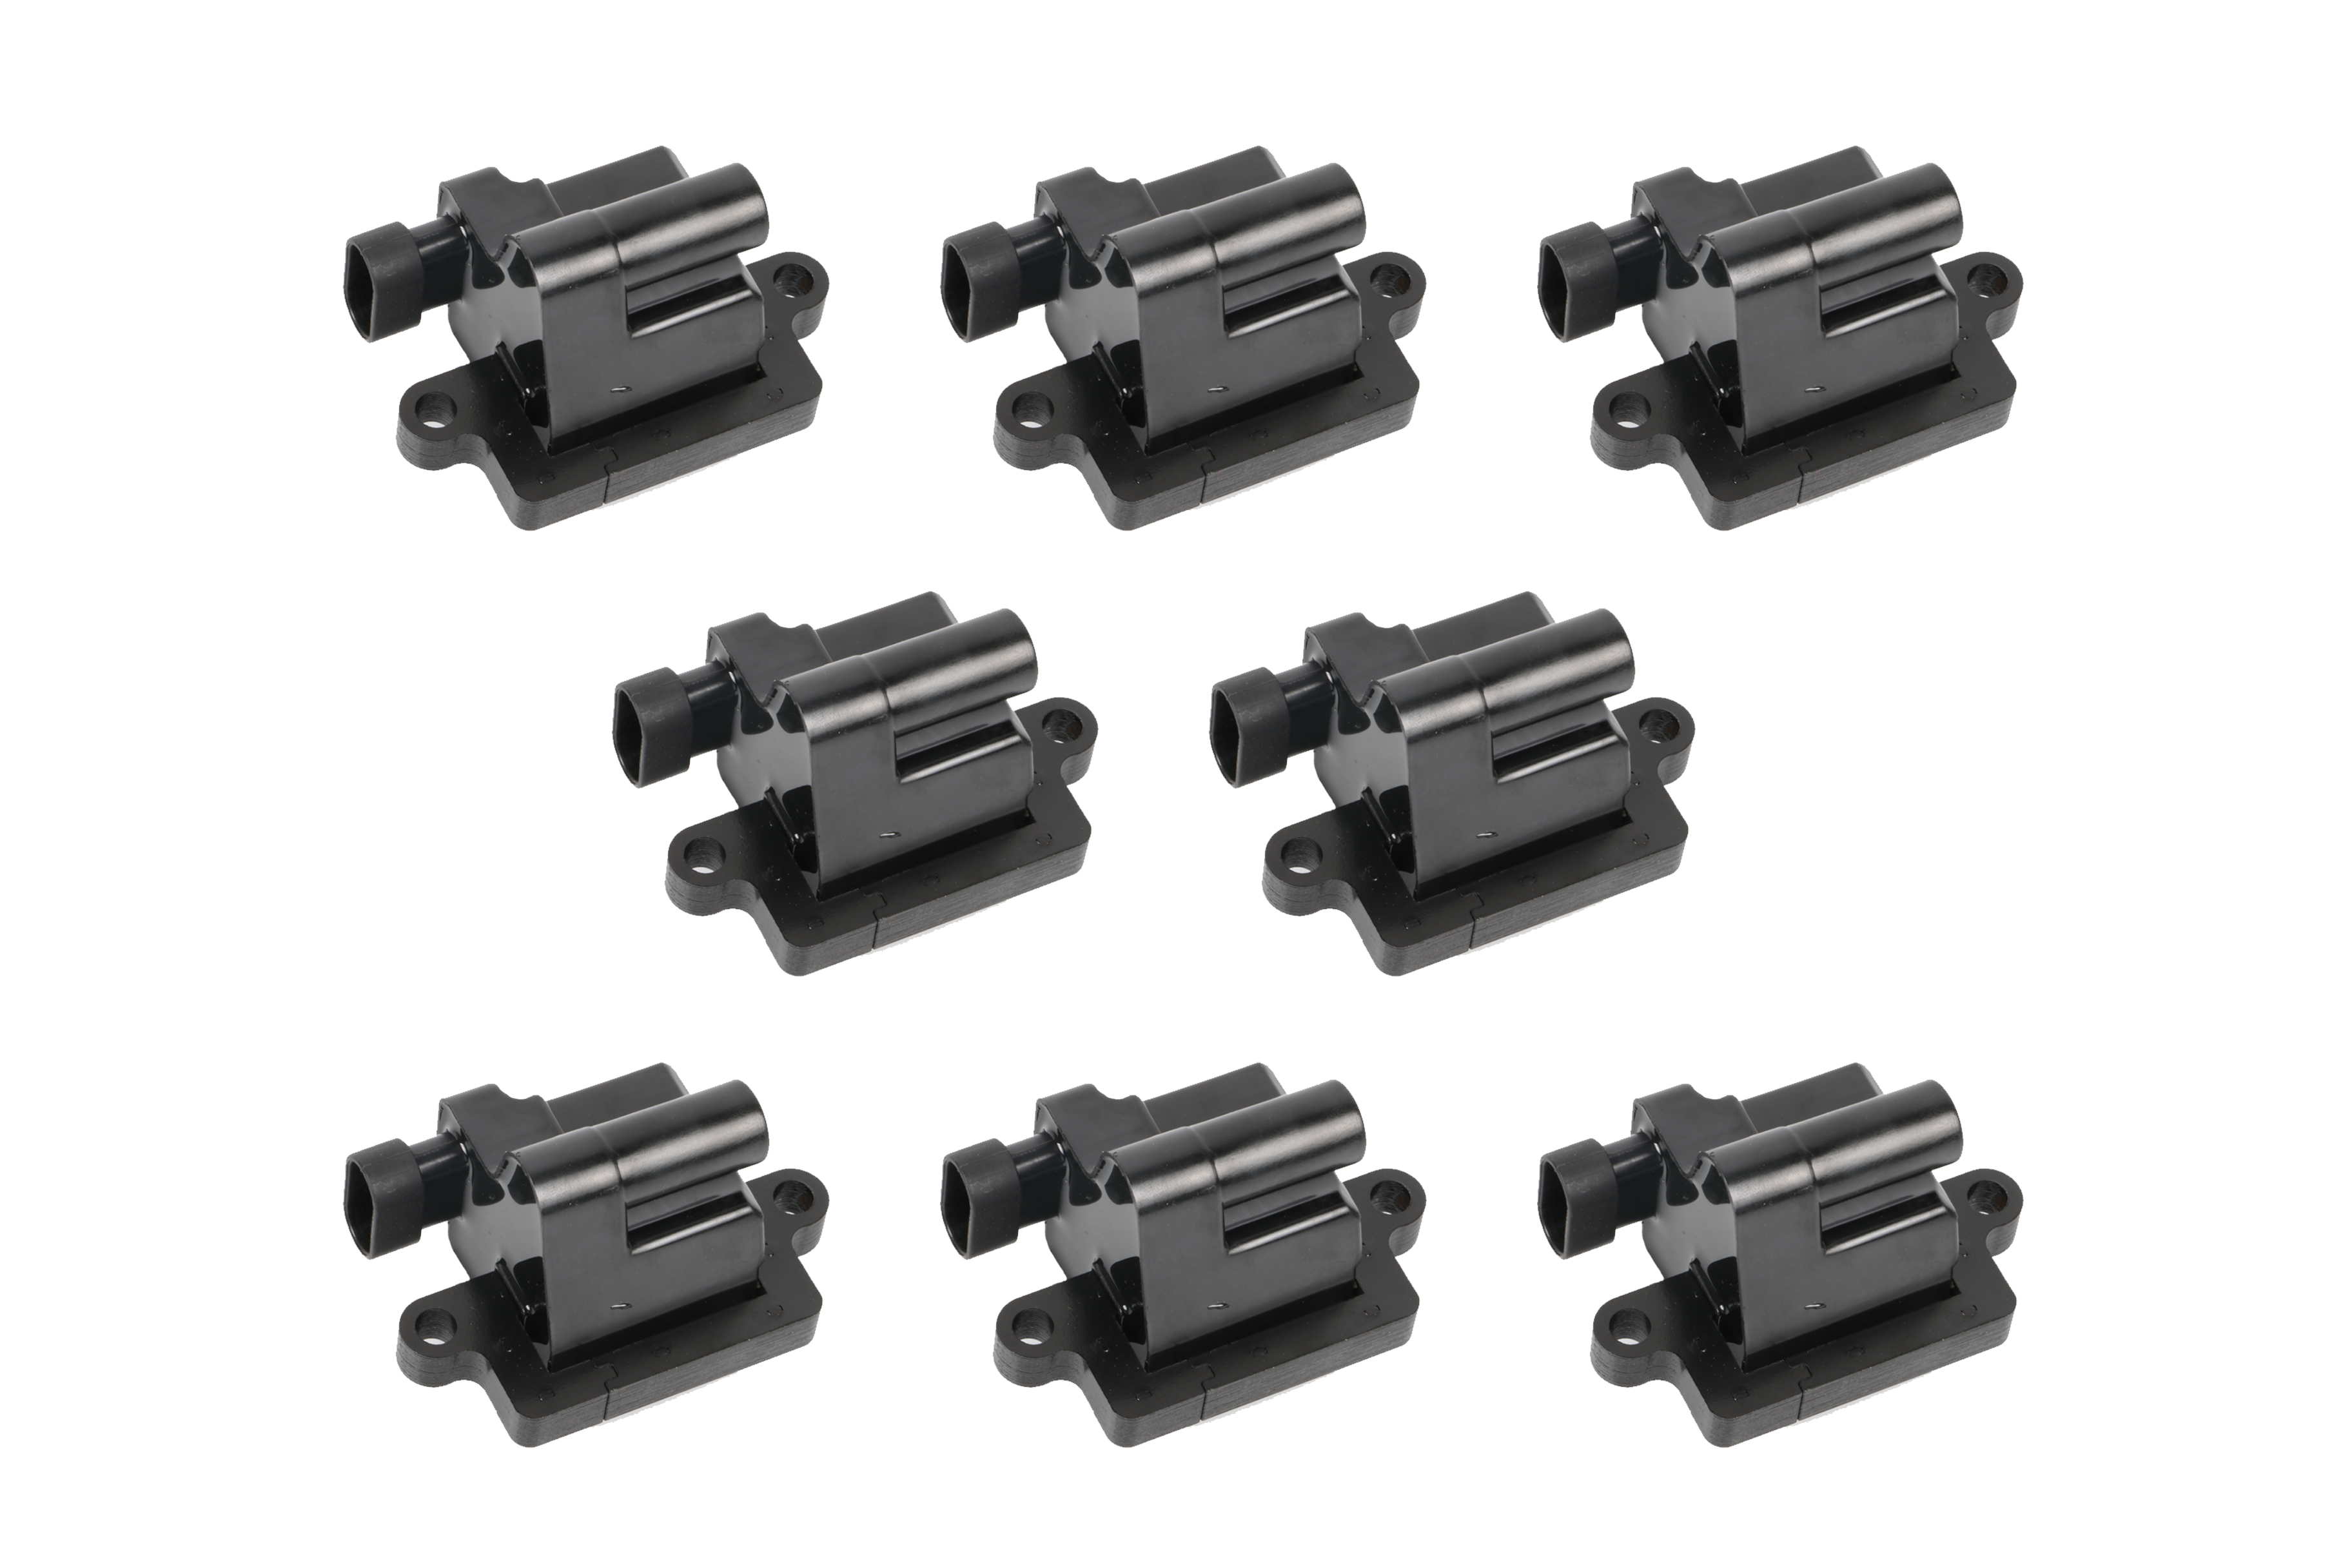 Ignition Coil Set of 8 - Replaces# 12558693, GN10298 - Fits Cadillac Escalade, Chevy Silverado, Avalanche, Express 3500, Suburban, Tahoe, GMC Sierra, Savana, Yukon & more Image